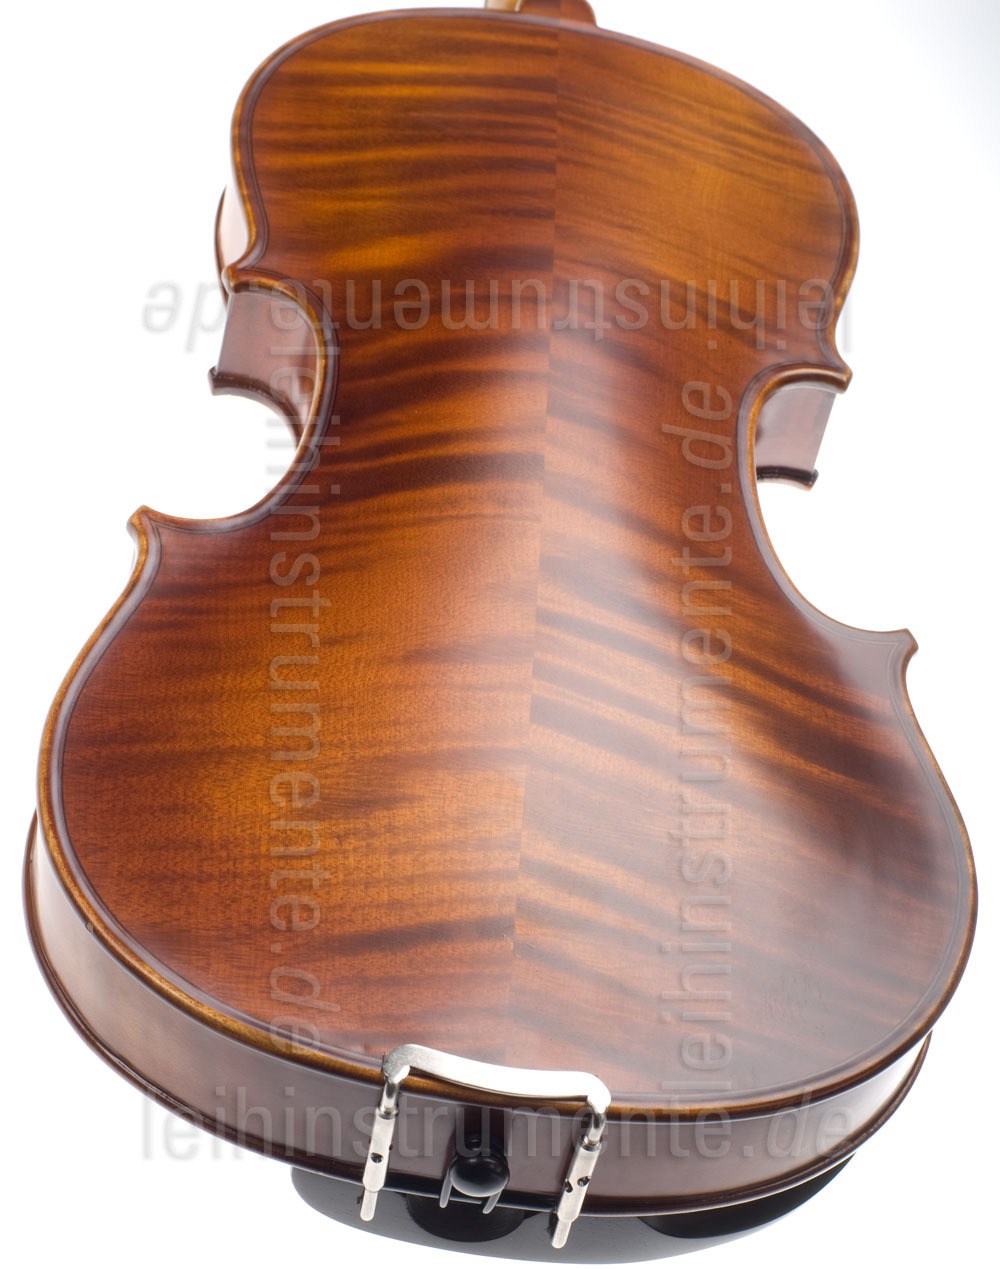 to article description / price 4/4 Violinset GASPARINI MODEL ADVANCED - all solid - shoulder rest